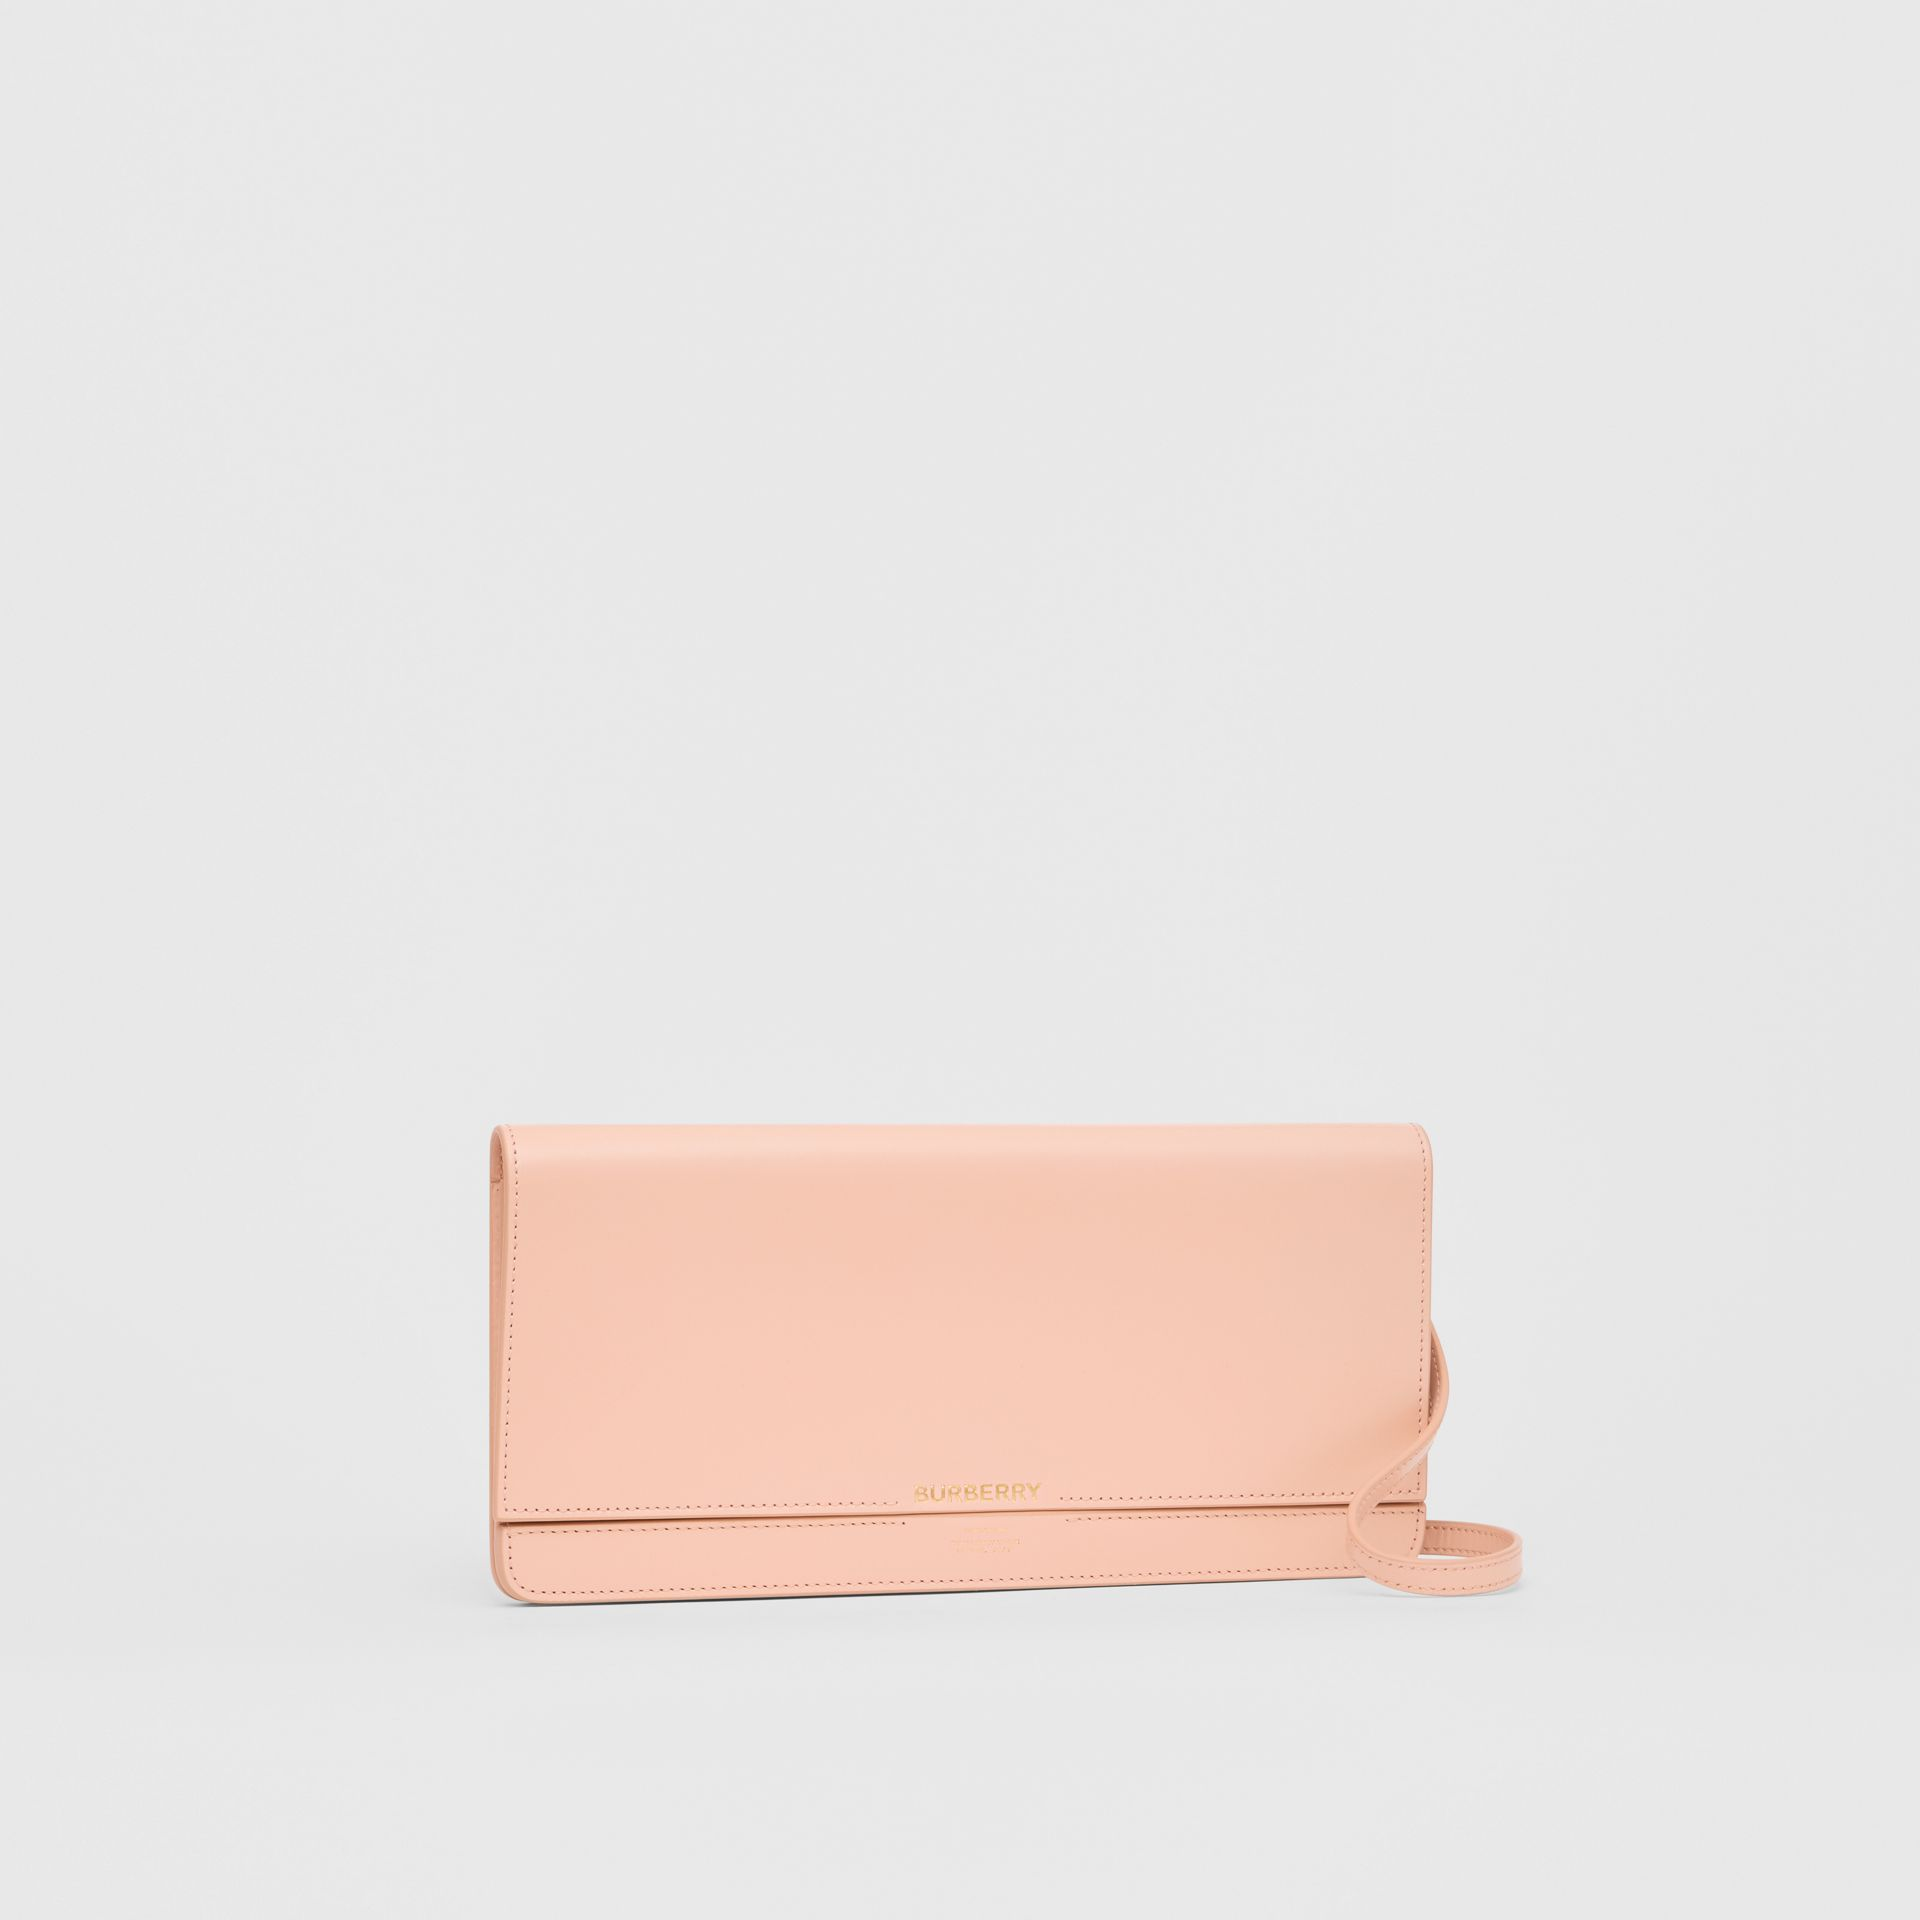 Horseferry Print Leather Bag with Detachable Strap in Blush Pink - Women | Burberry United Kingdom - gallery image 6